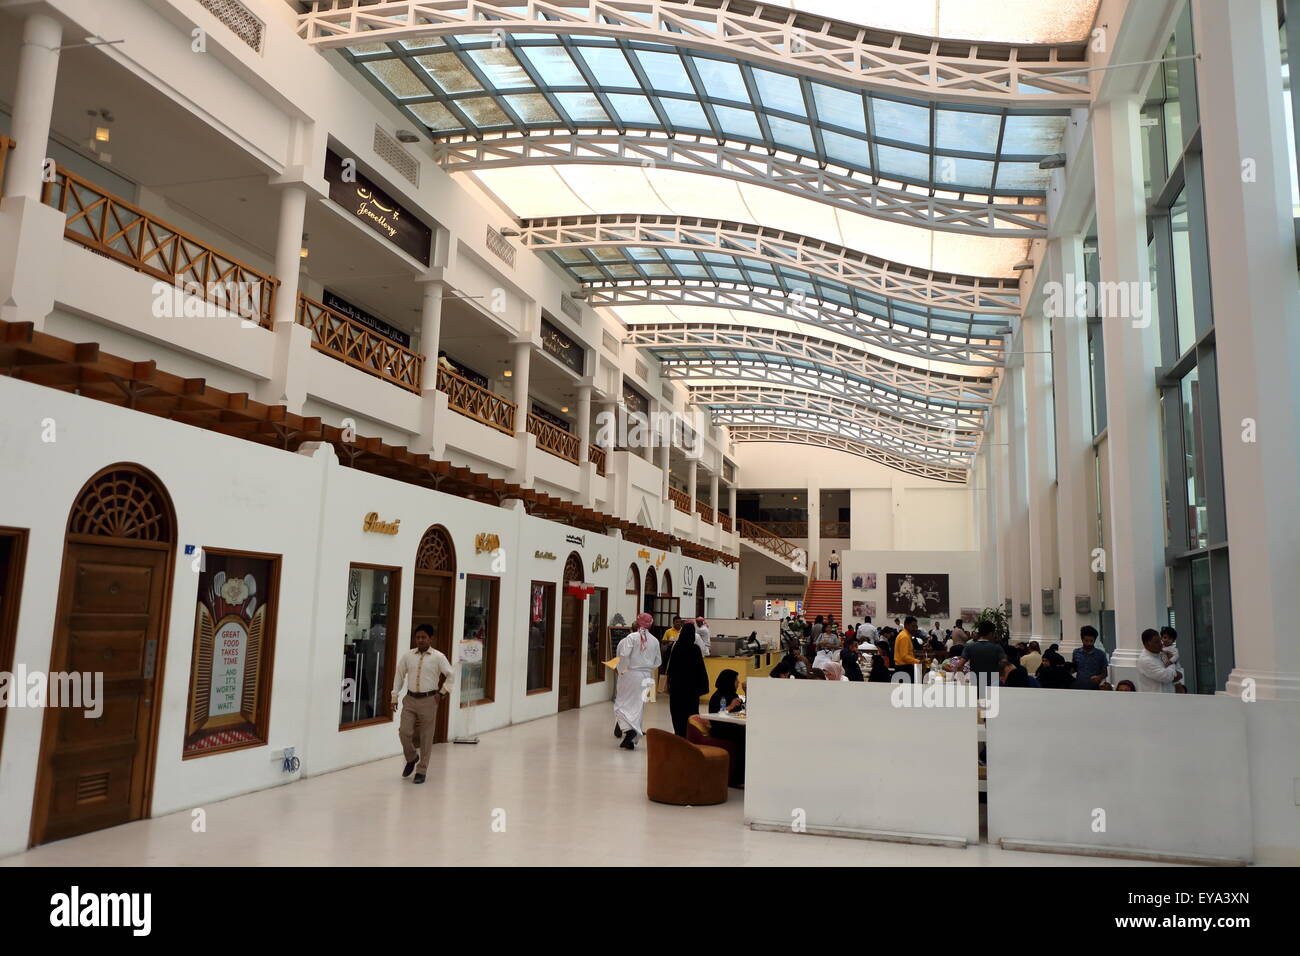 The modern hall the souk in Manama, Kingdom of Bahrain - Stock Image